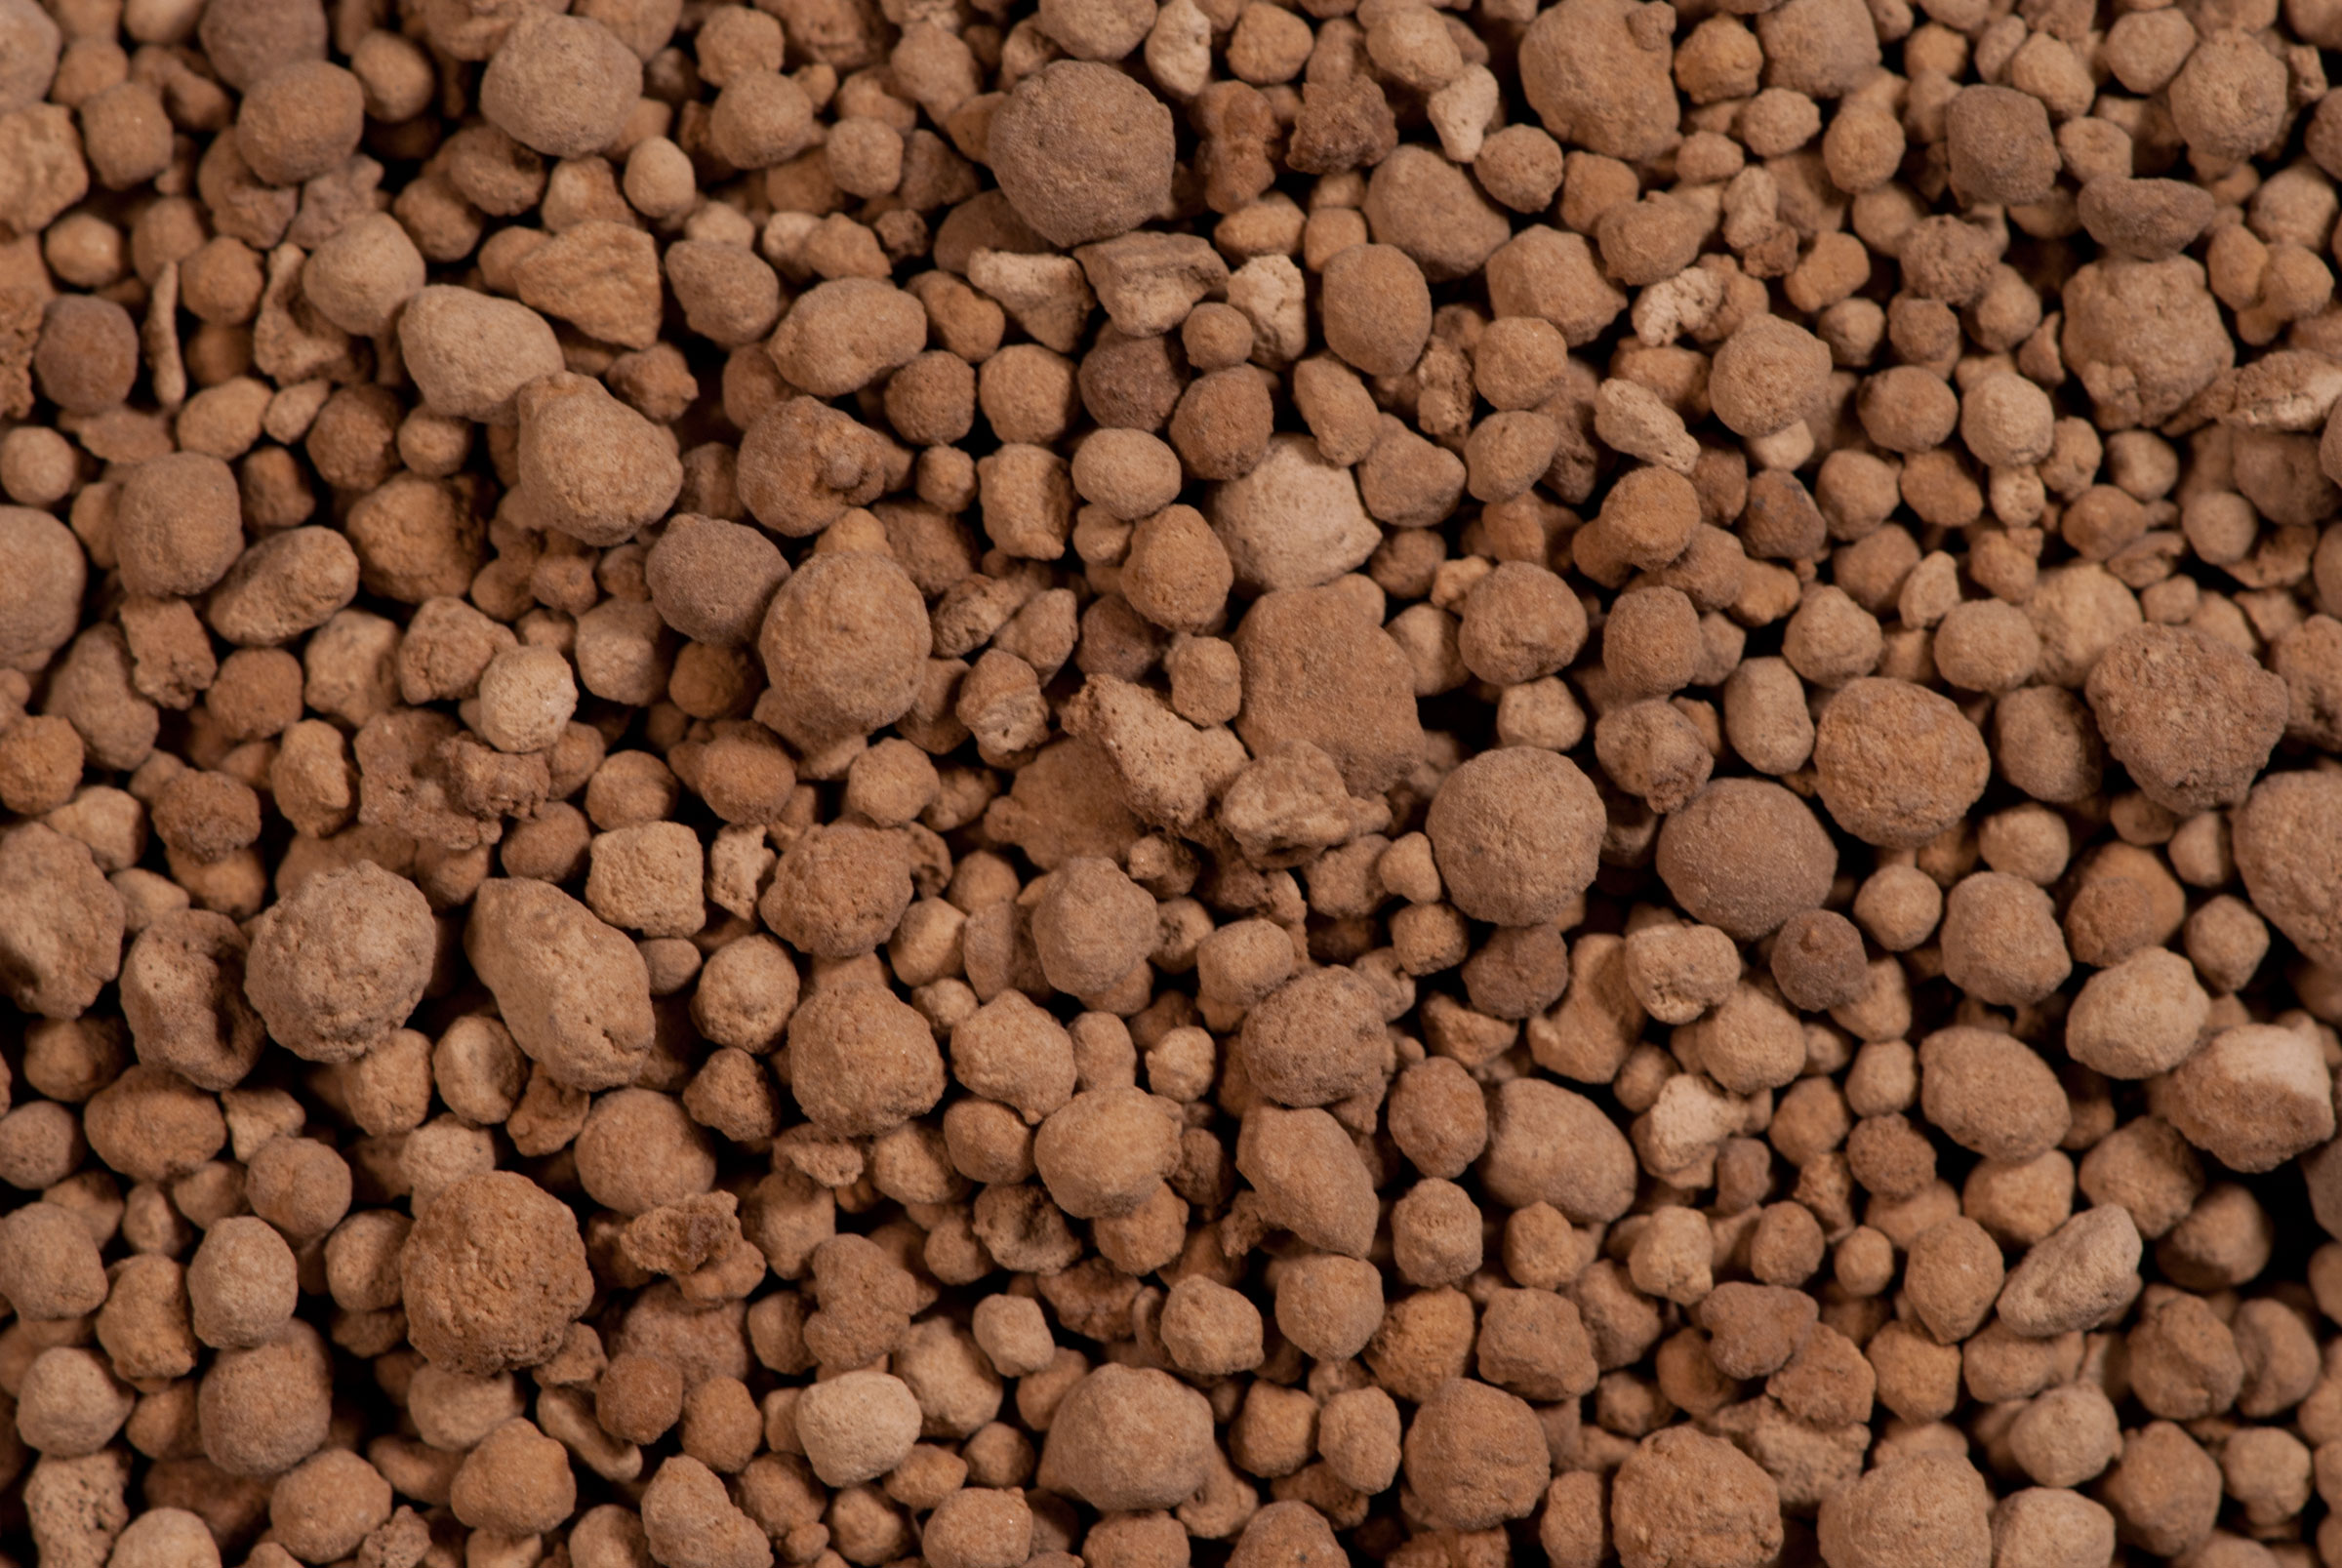 Garden lime pellets garden ftempo - What is lime used for in gardening ...